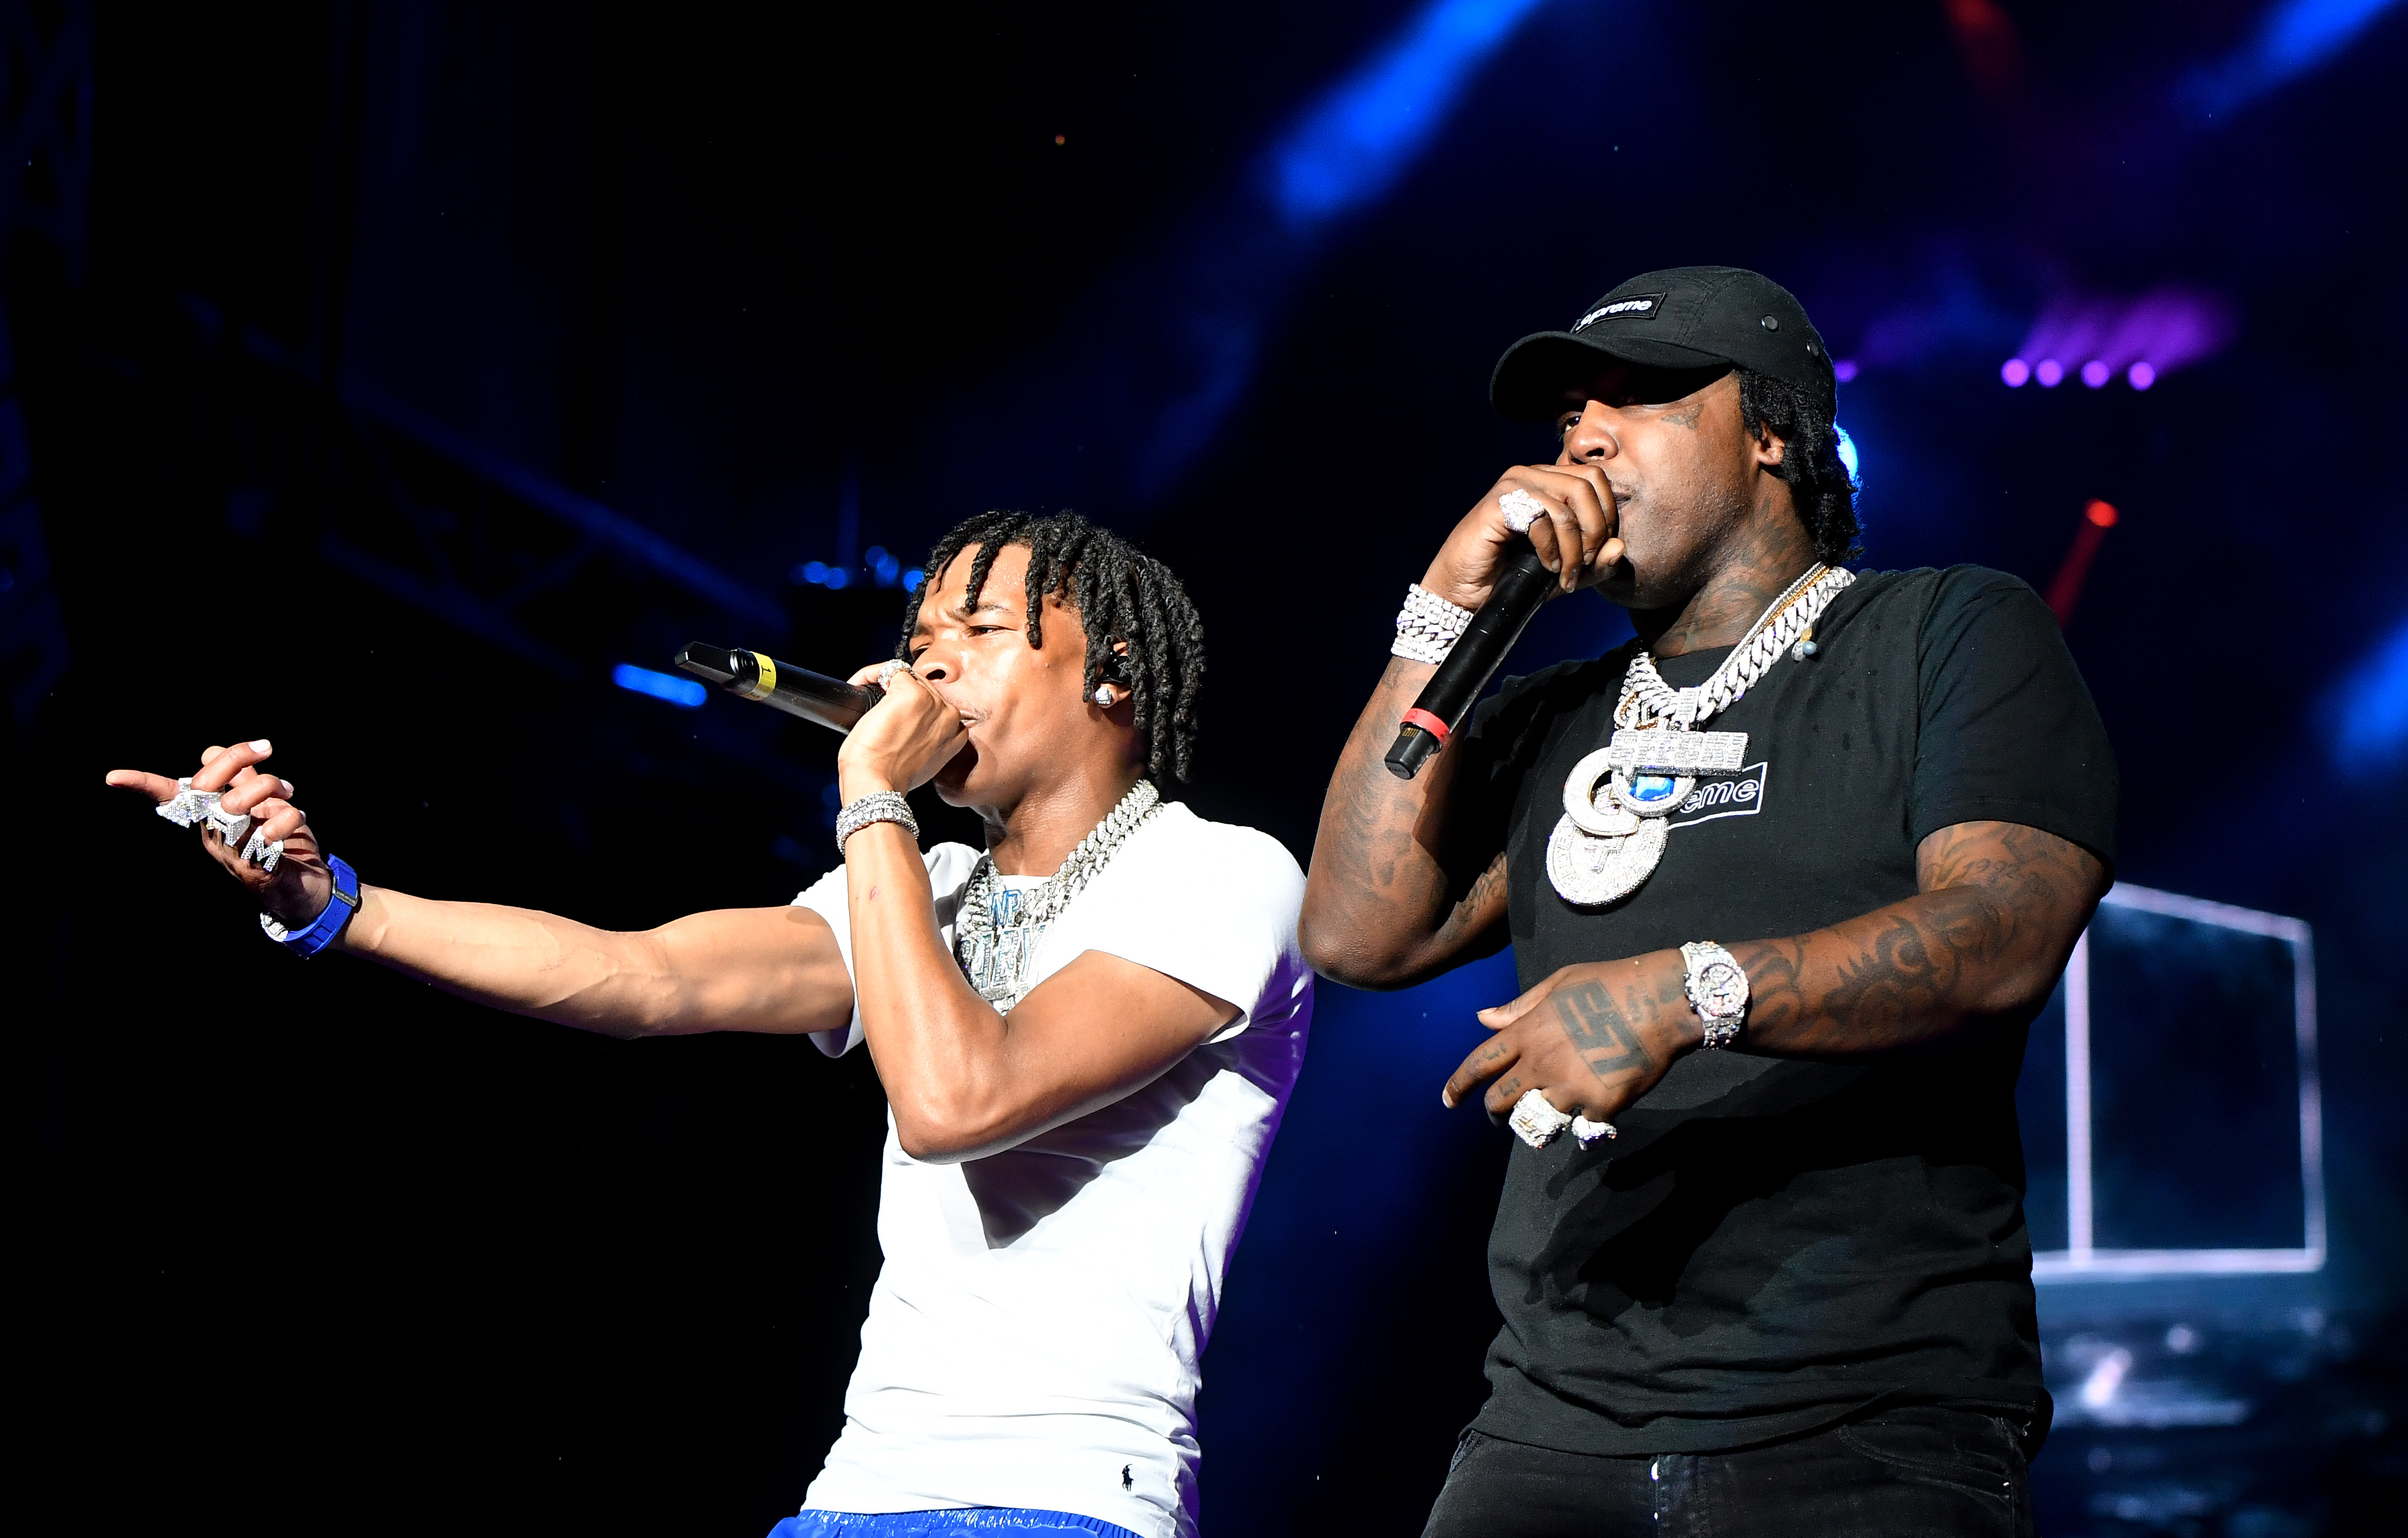 Lil Wayne and EST Gee